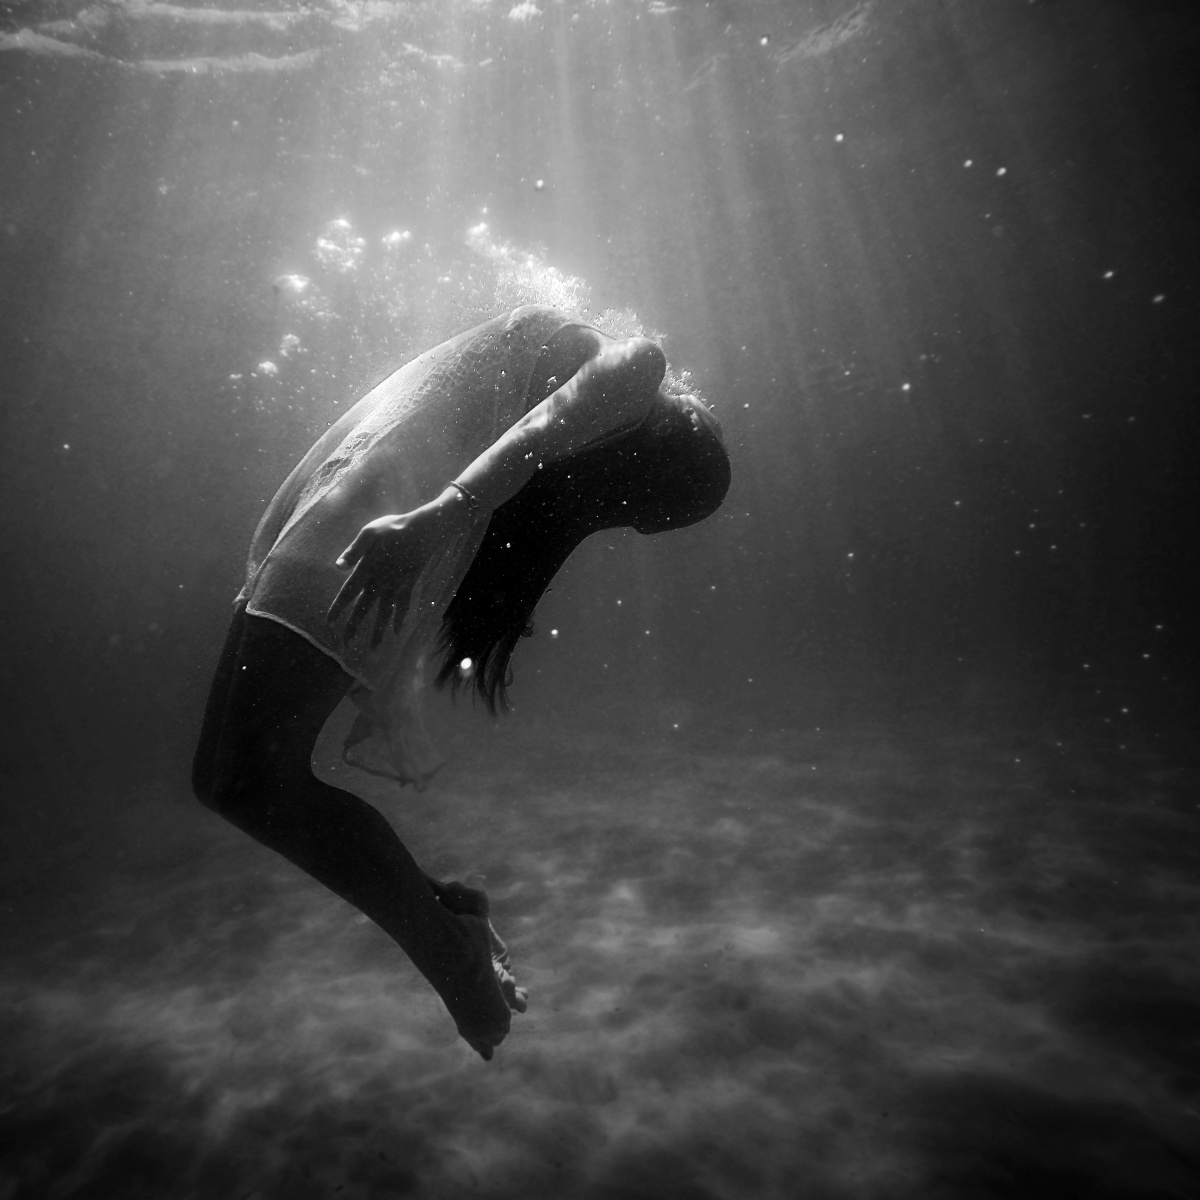 Drowning In Fear: Who Am I?